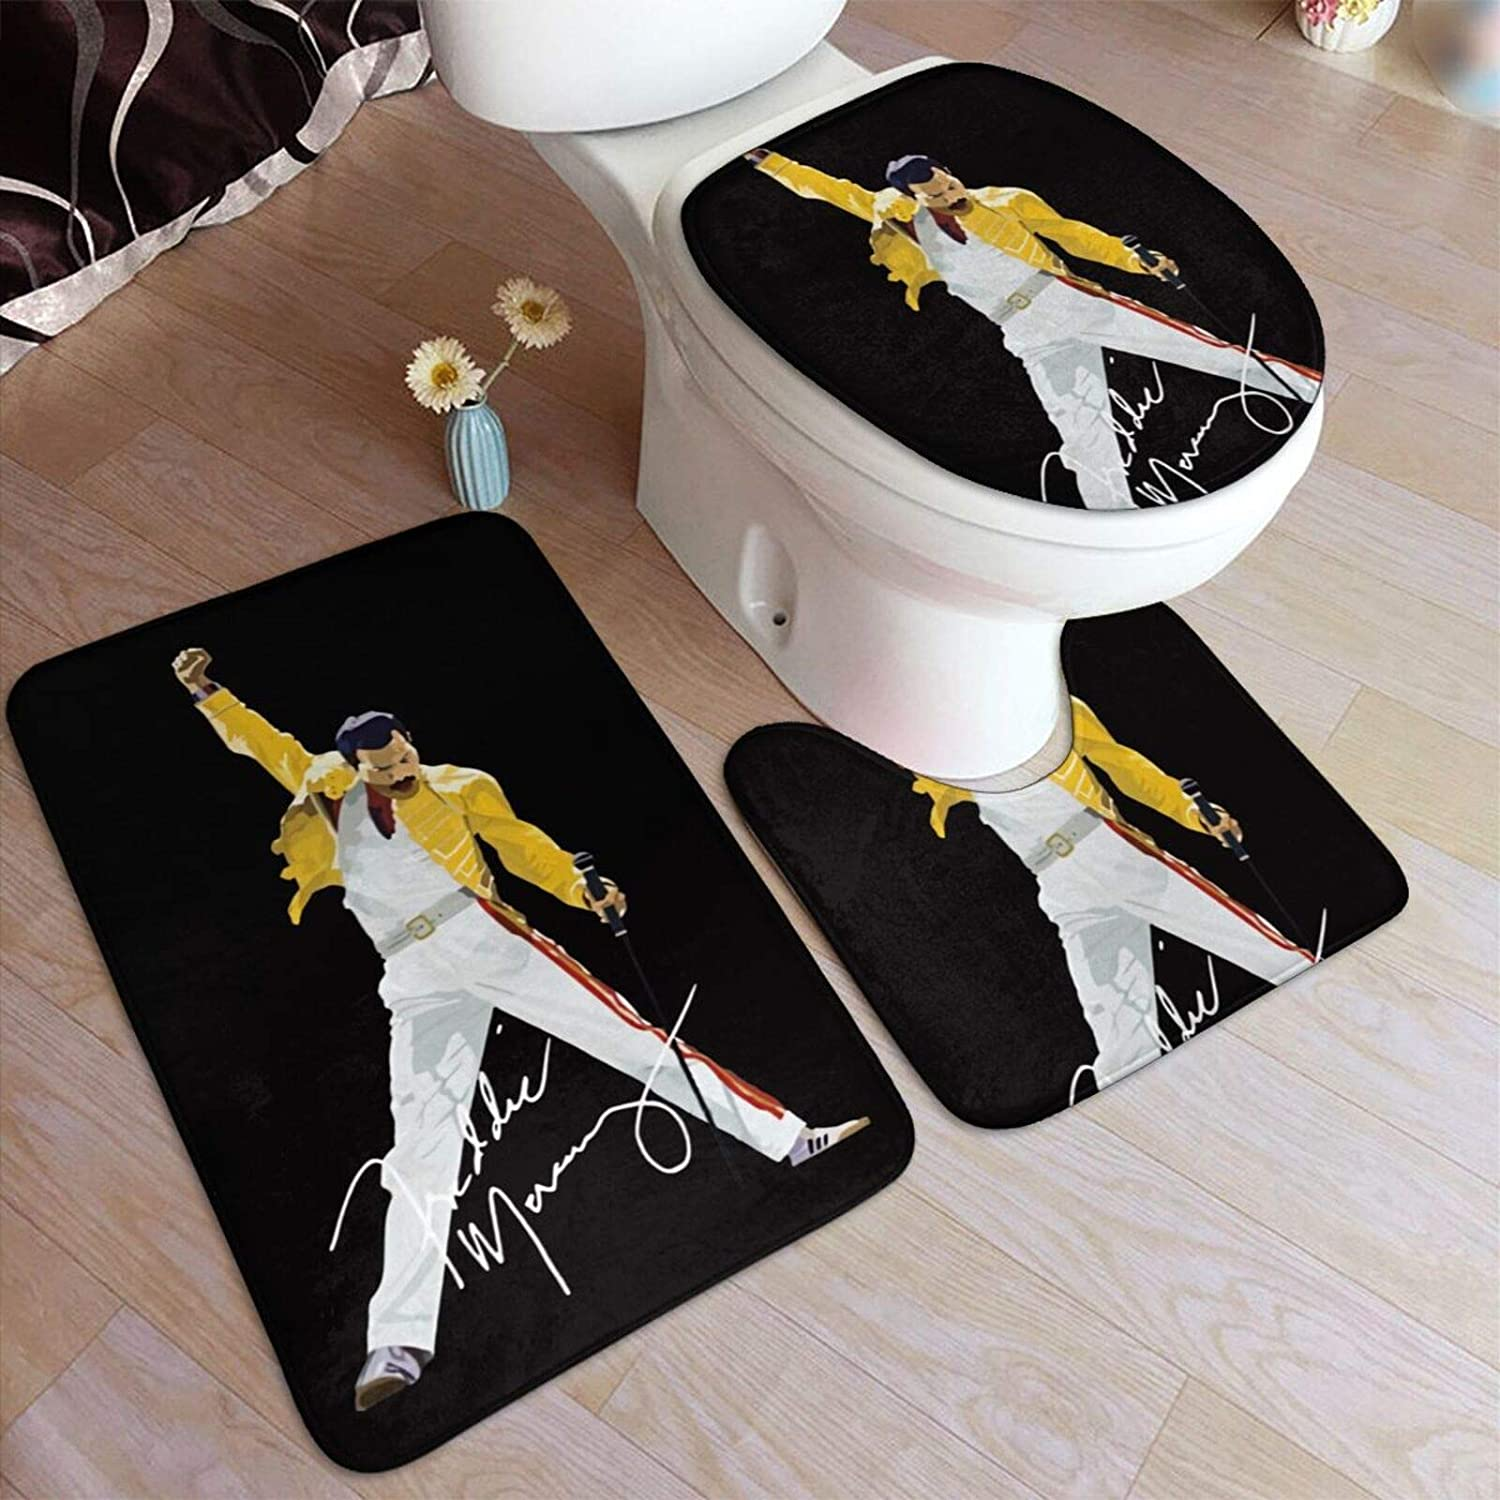 Freddie Mercury Bathroom Rug Mats Set 3 Piece Anti-Skid Pads Bath Mat + Contour + Toilet Lid Cover Bathroom Antiskid Pad